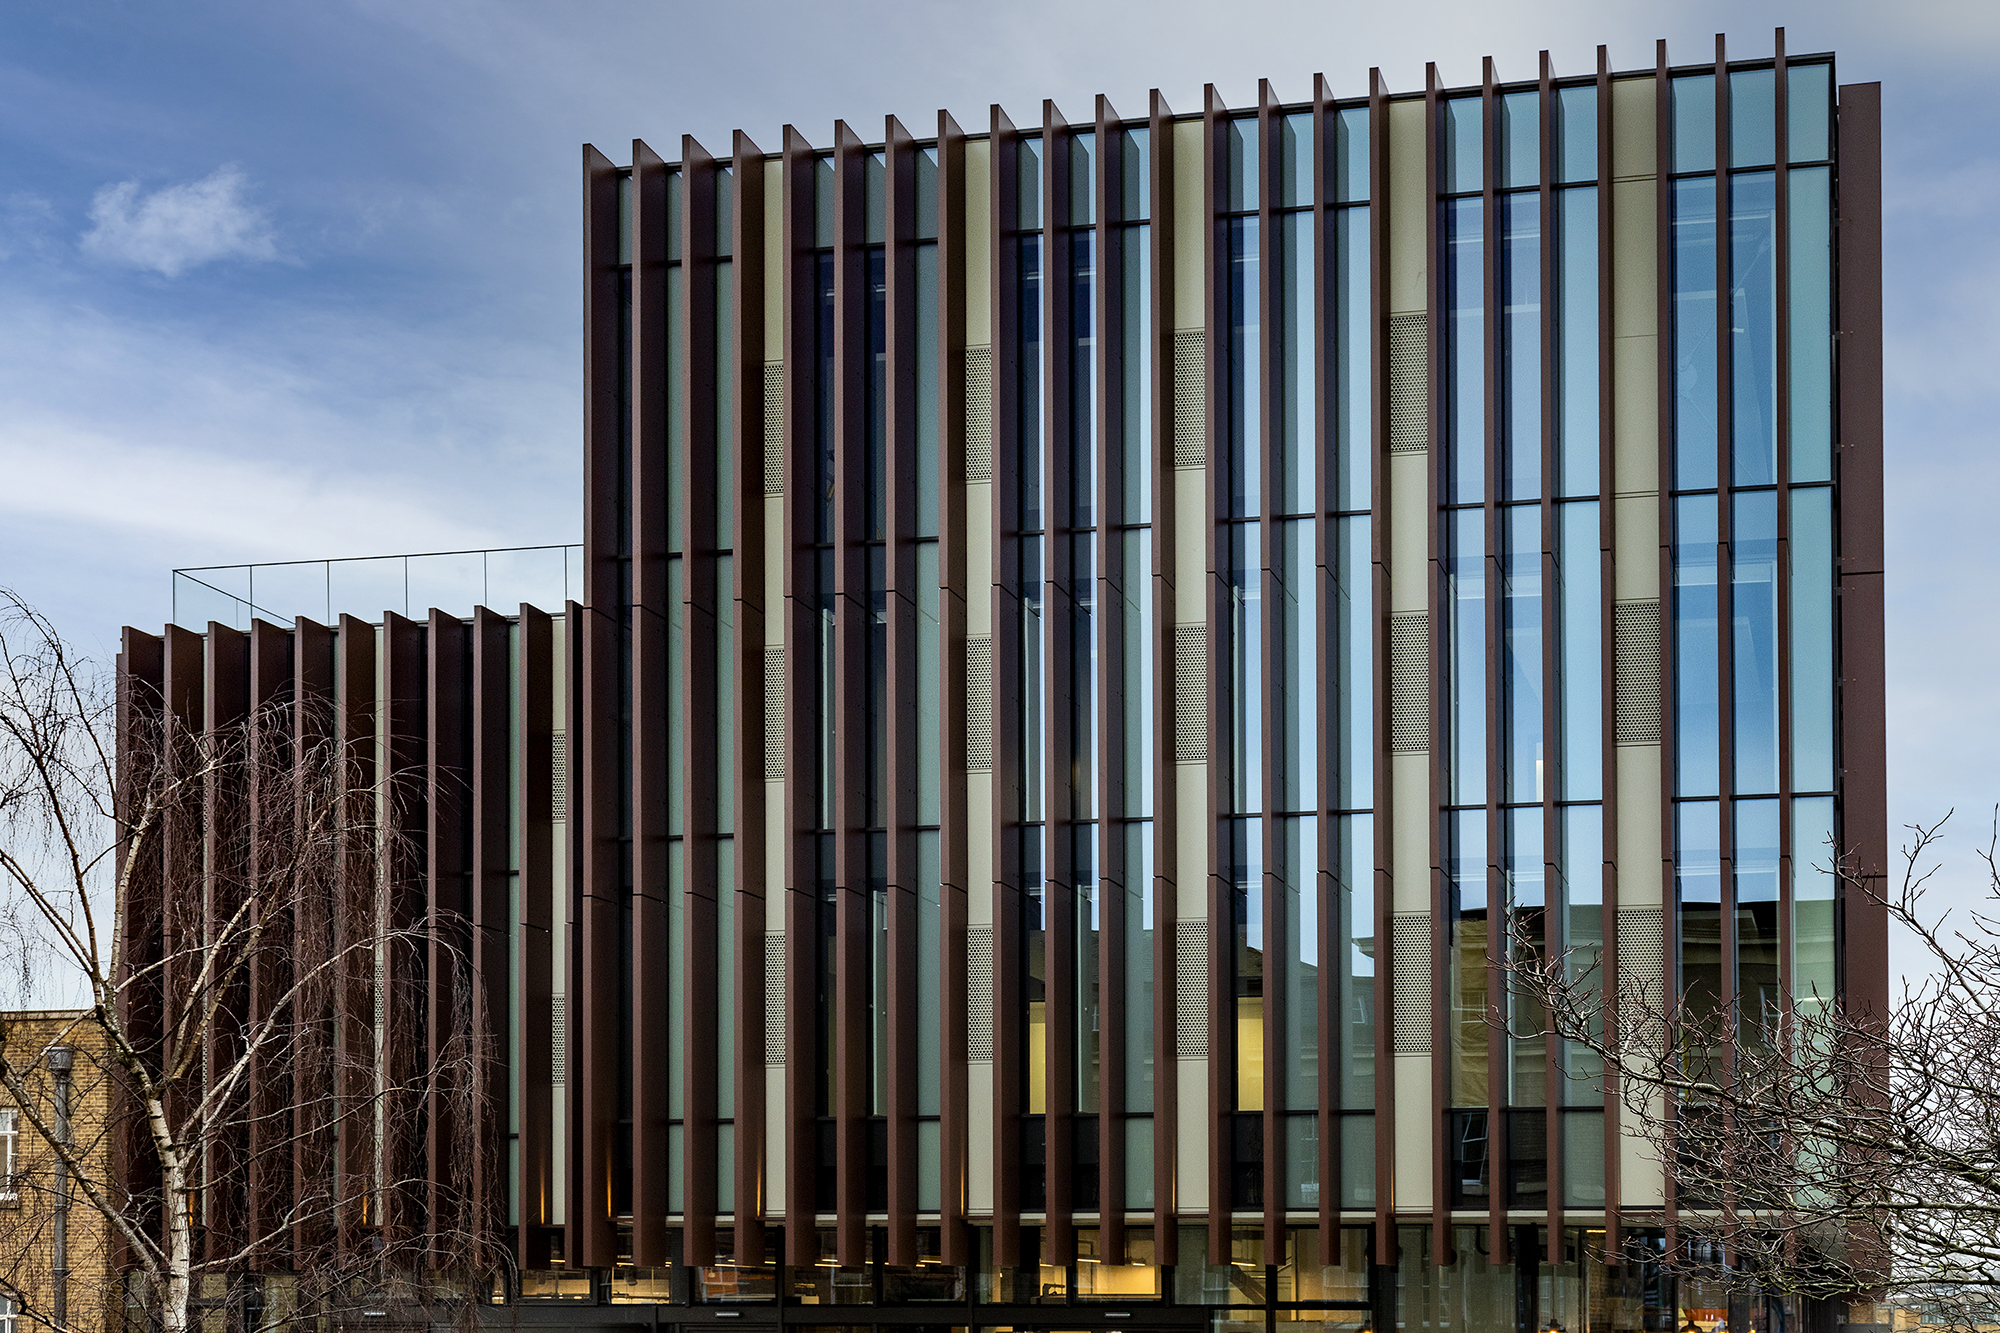 PERCY GEE_UNIVERSITY_ARCHITECTURAL FACADE_5 STAR (9)